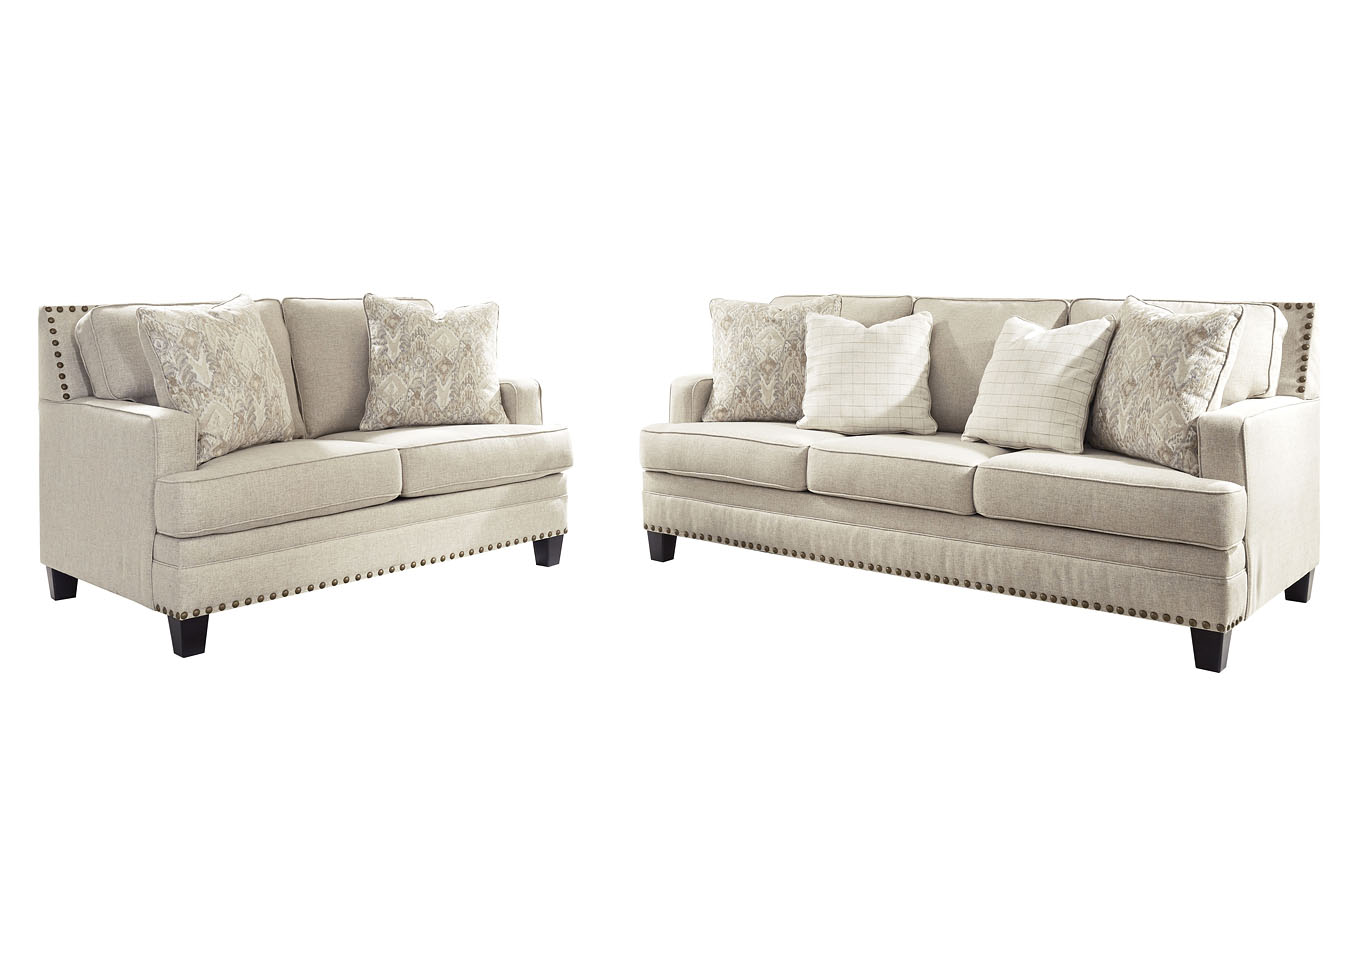 Claredon Linen Sofa and Loveseat,Benchcraft